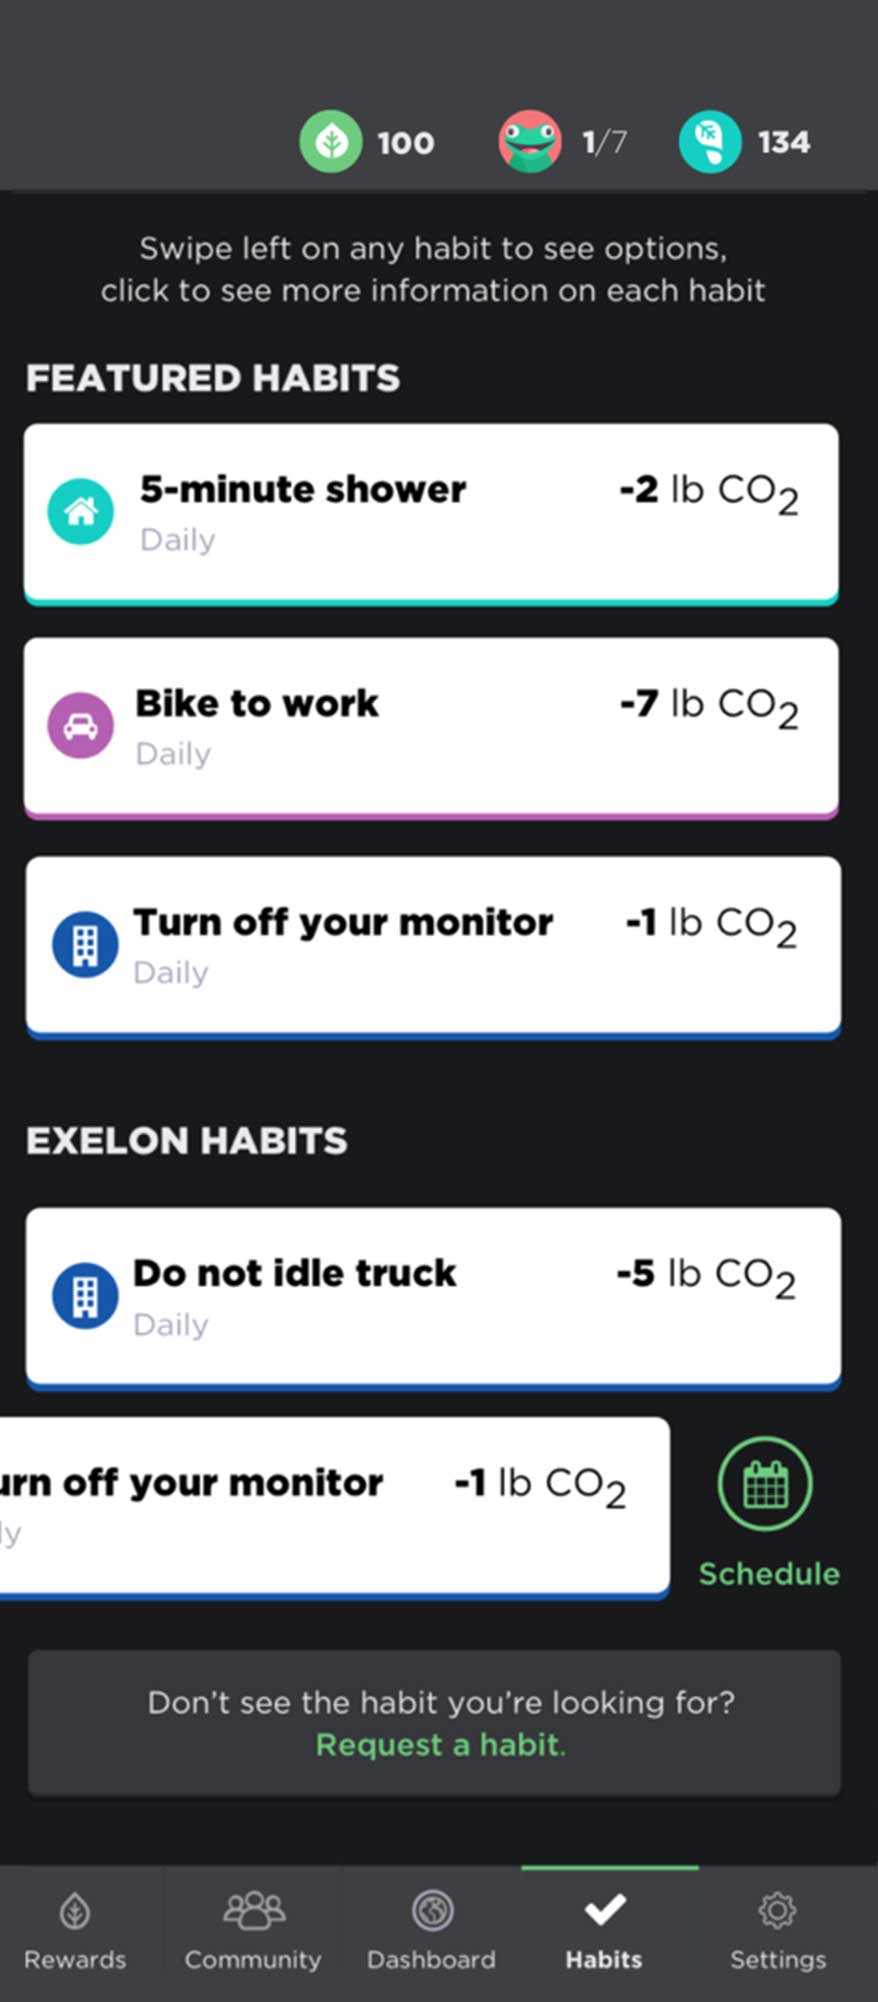 Featured habits screen where users can see and complete habits to reduce their footprint.